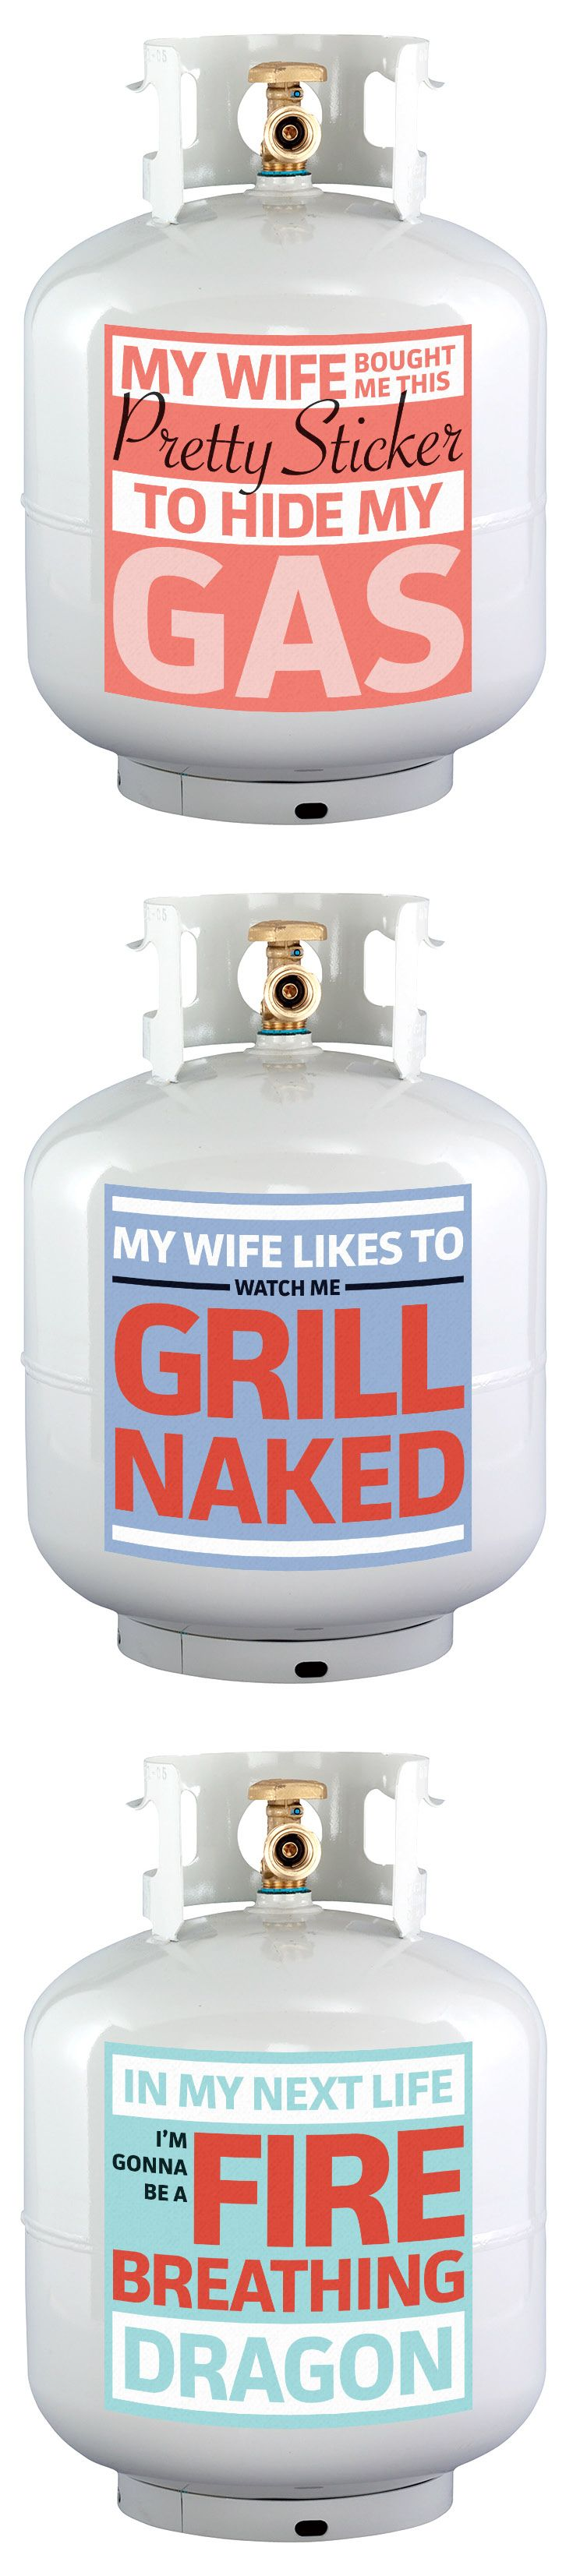 My wife bought me this pretty sticker to hide my gas! hideyourgas.com    My wife likes to watch me grill naked! hideyourgas.com    In my next life I'm gonna be a fire breathing dragon! hideyourgas.com     Hide Your Gas!